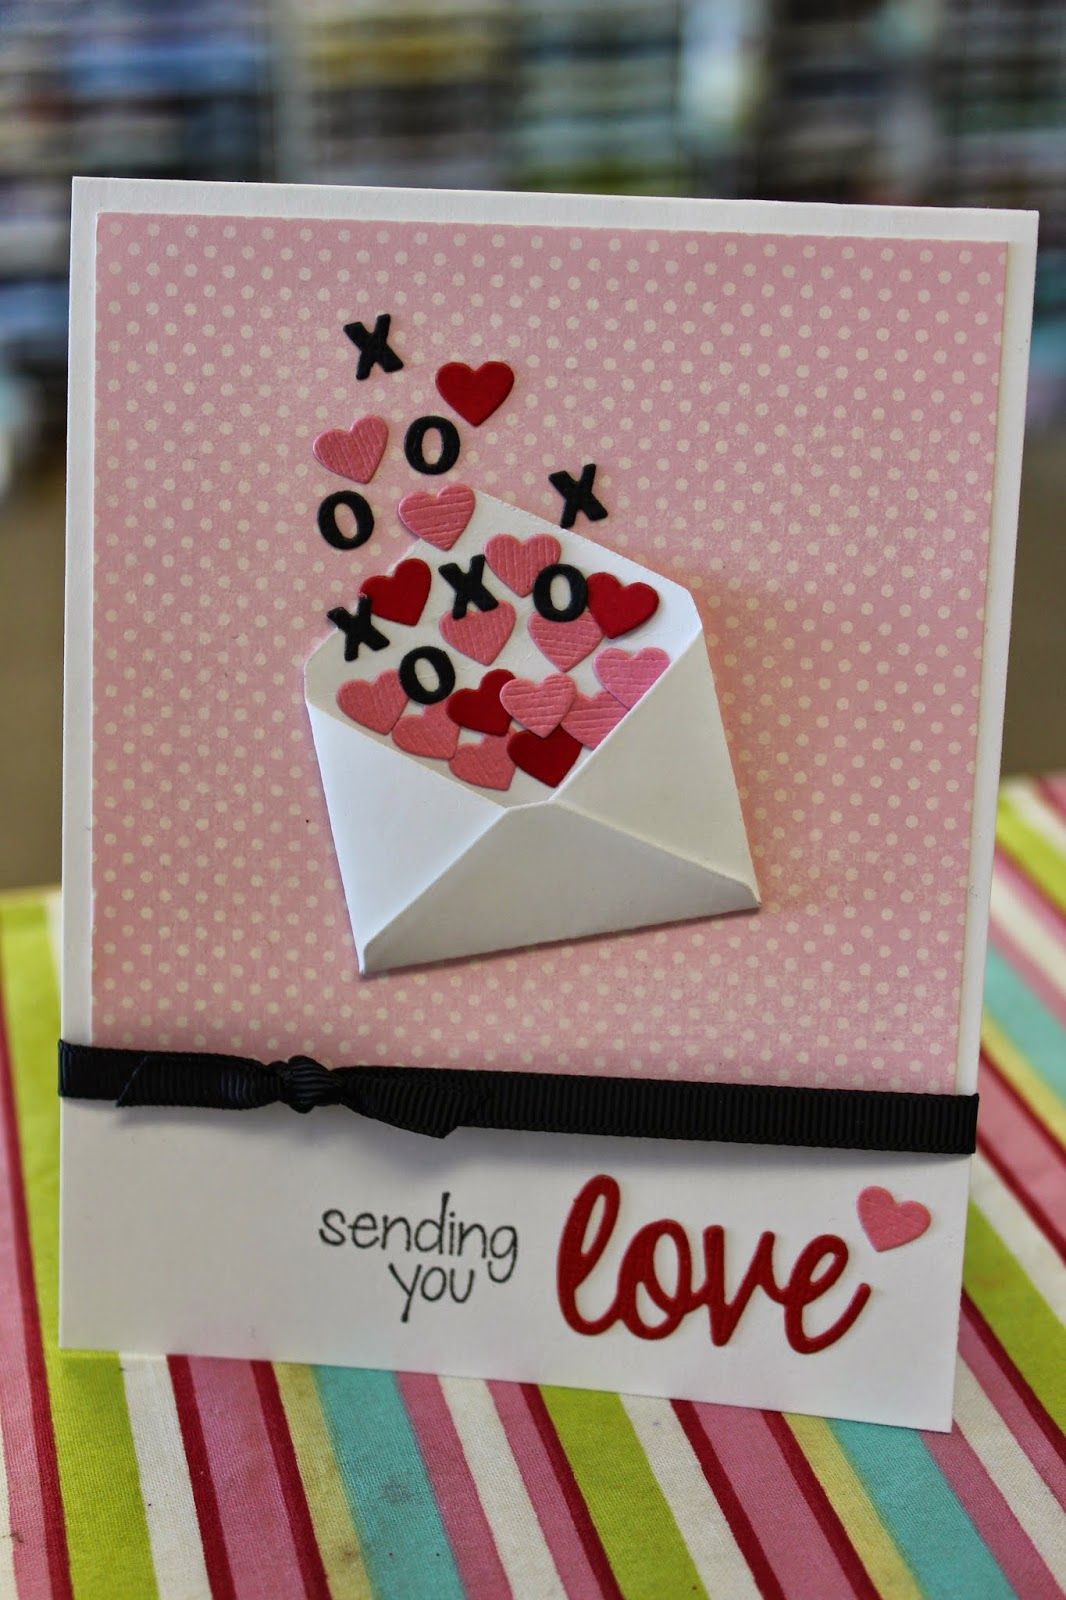 Taylored expressions more cards pinterest cards card ideas card heart hearts envelope sending love loving greetings heartfelt wishes taylored expressions xoxoxoxo kristyandbryce Image collections